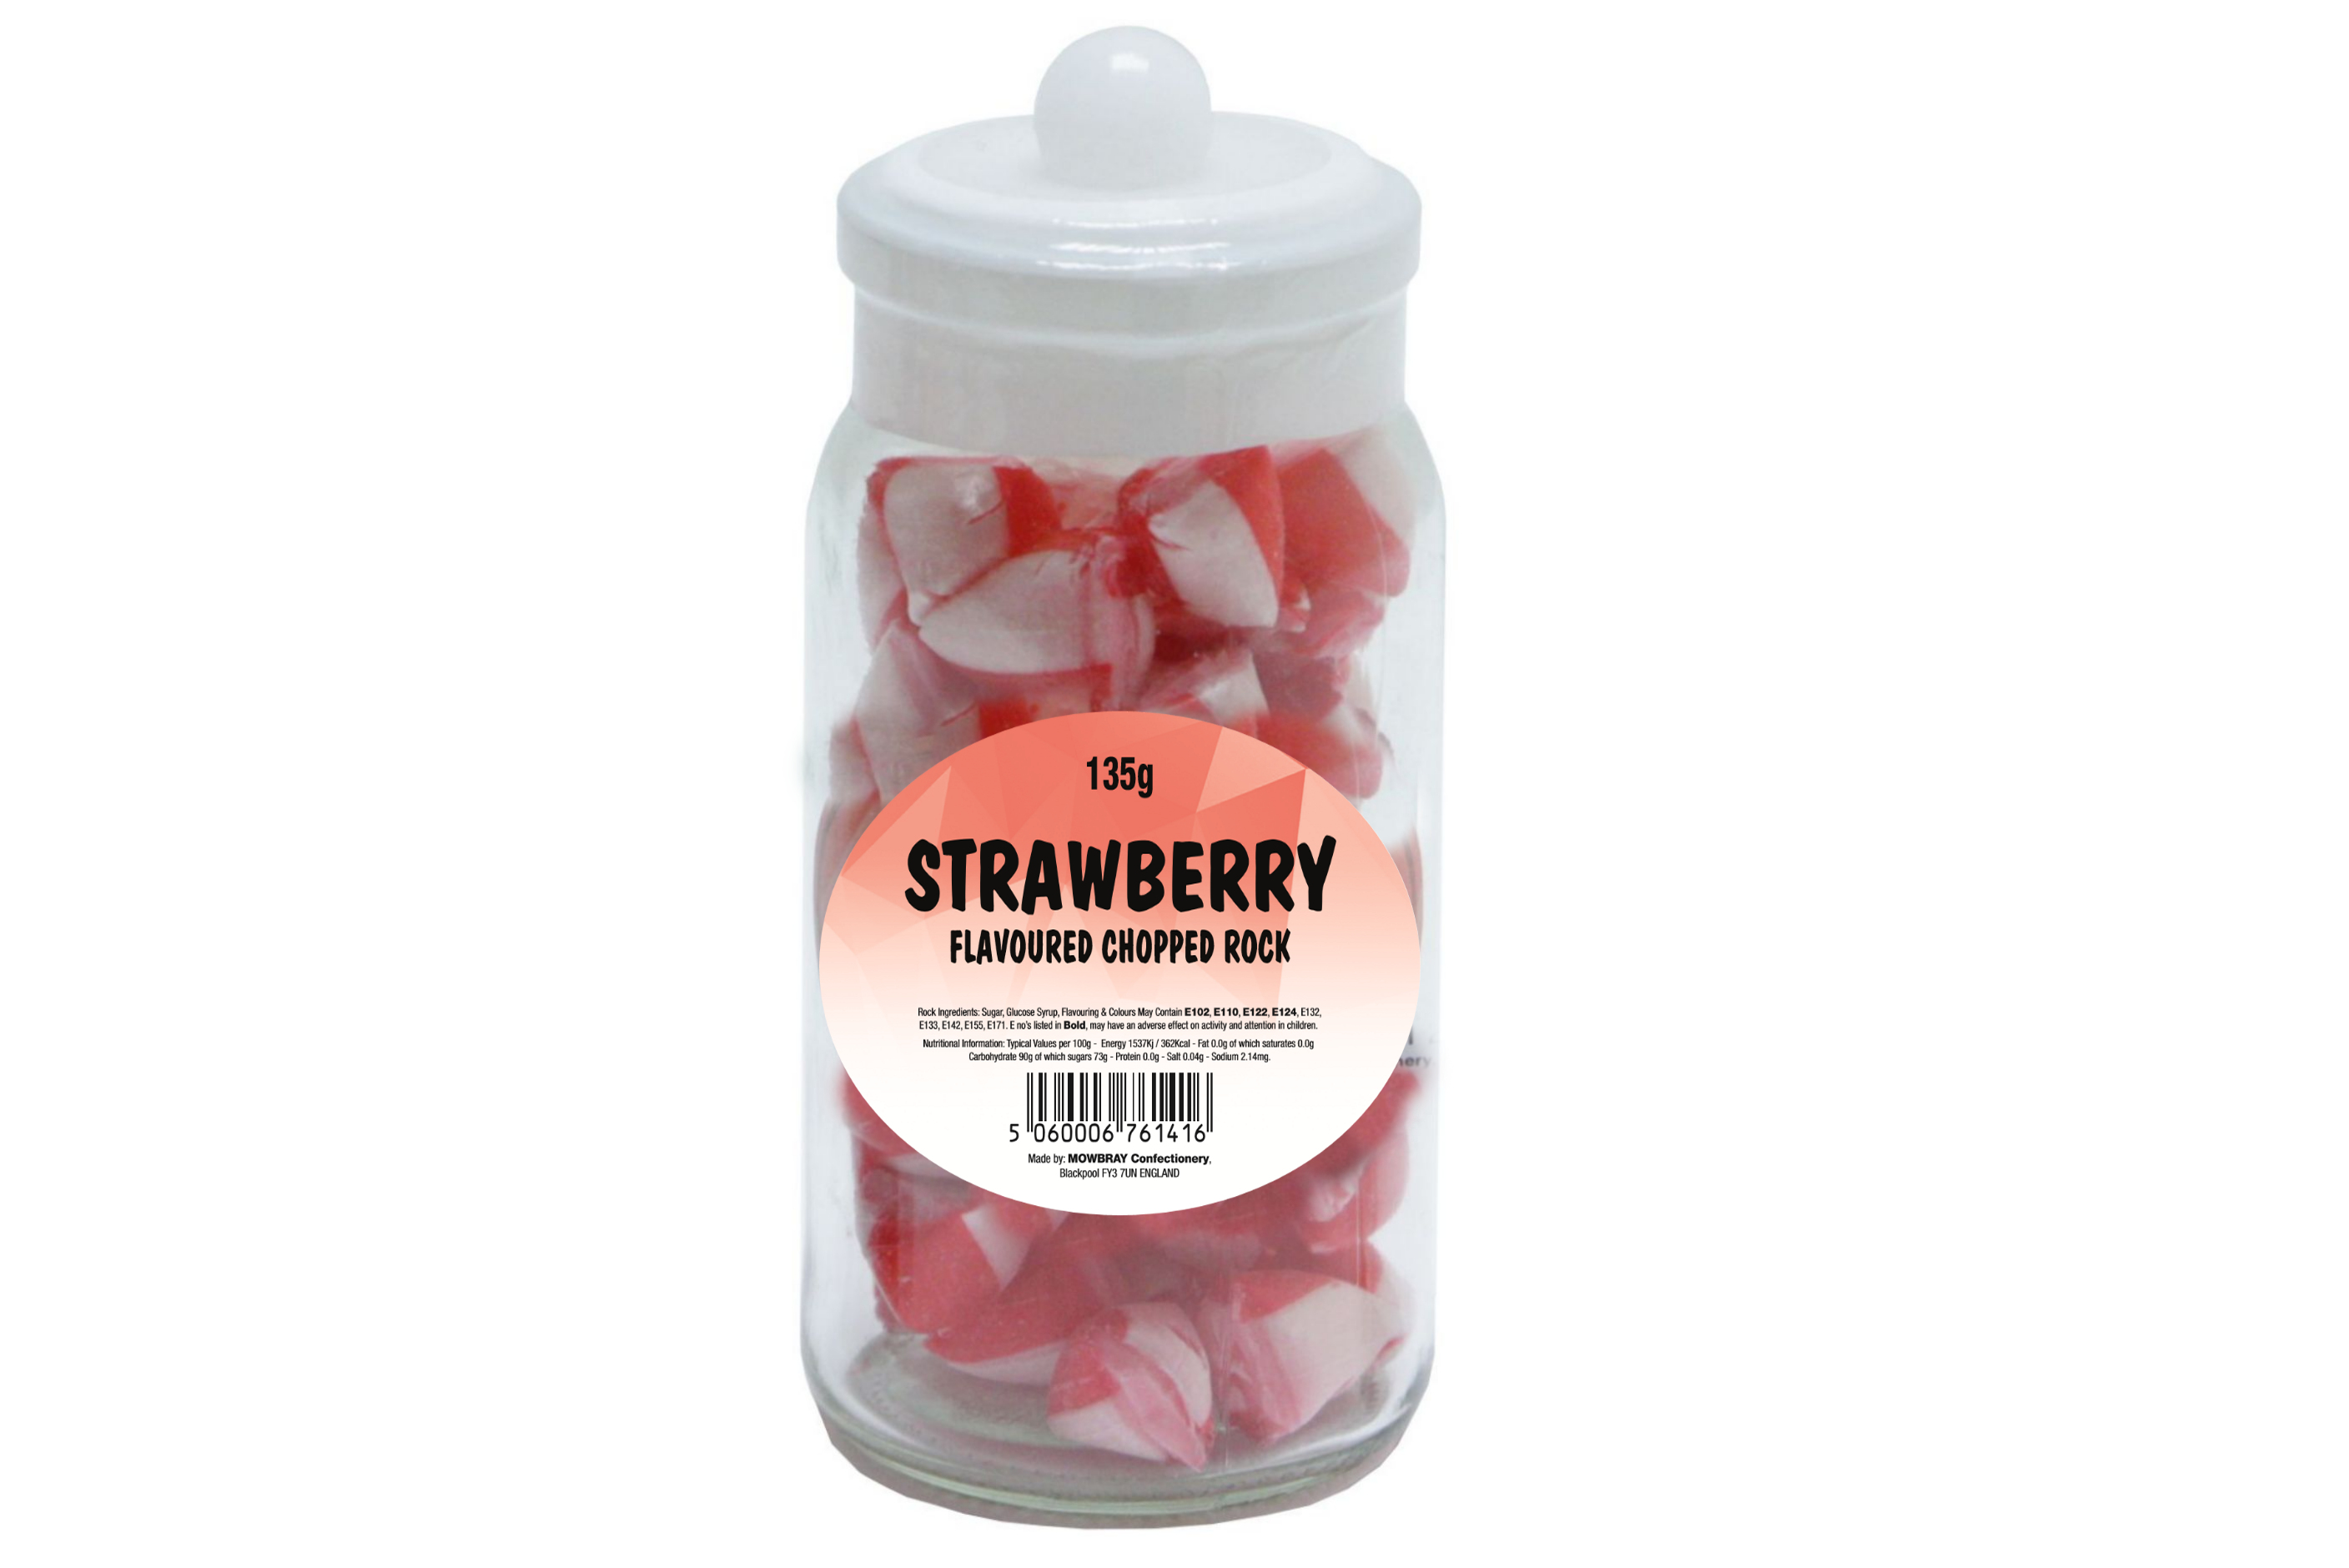 Strawberry Flavoured Chopped Rock - Glass Jar